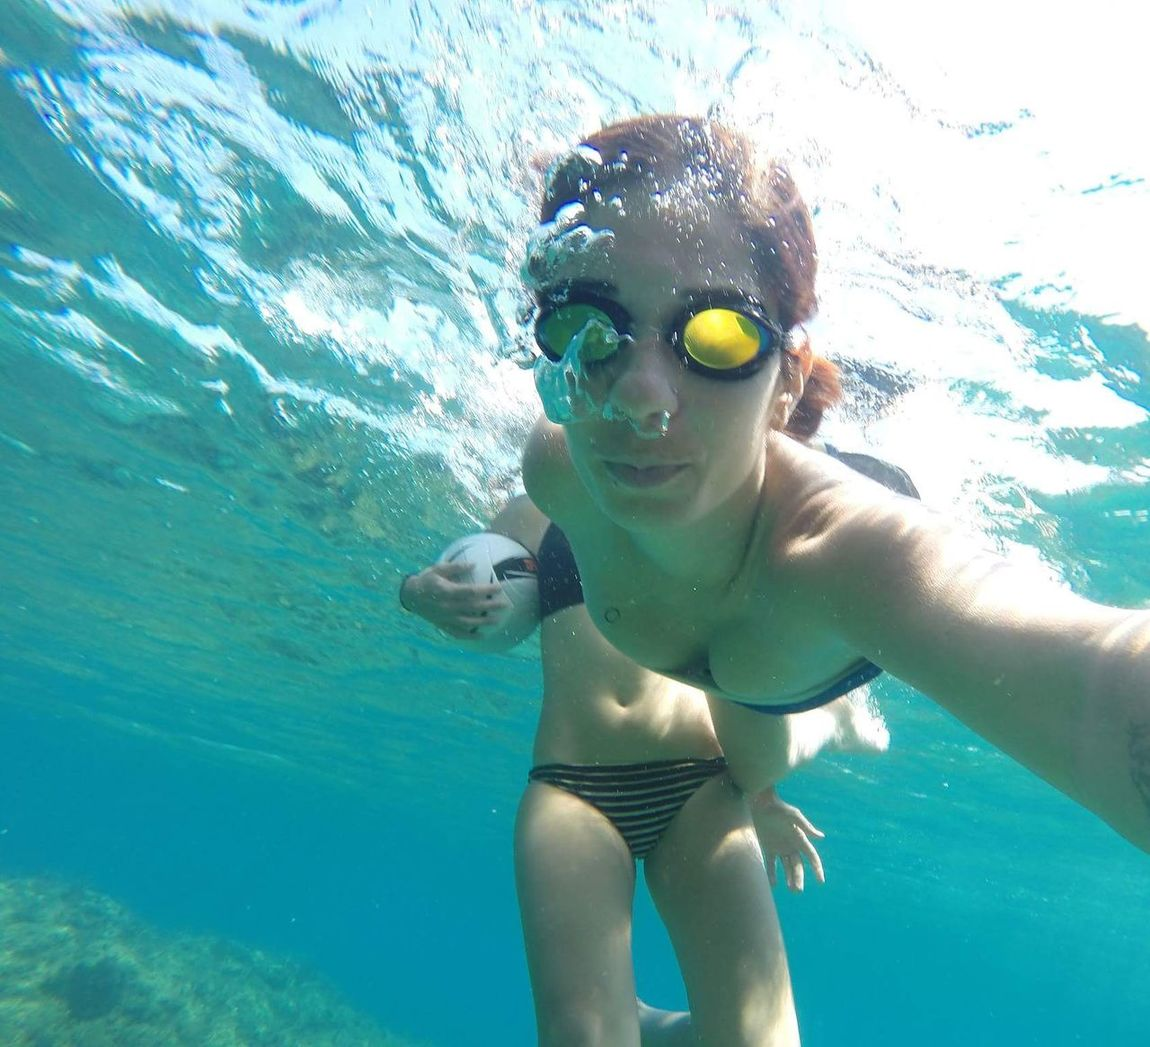 Underwater Swimming Water UnderSea Summer Swimming Goggles One Person Outdoors One Woman Only Sport Vacations Free Diving Selfie Under Water Nature Rocks And Water EyeEm EyeEm Nature Lover Clear Water Blue Water Aphroditie's Baths Aphrodite's Baths Aphrodite Beach Akamas Paphos Cyprus